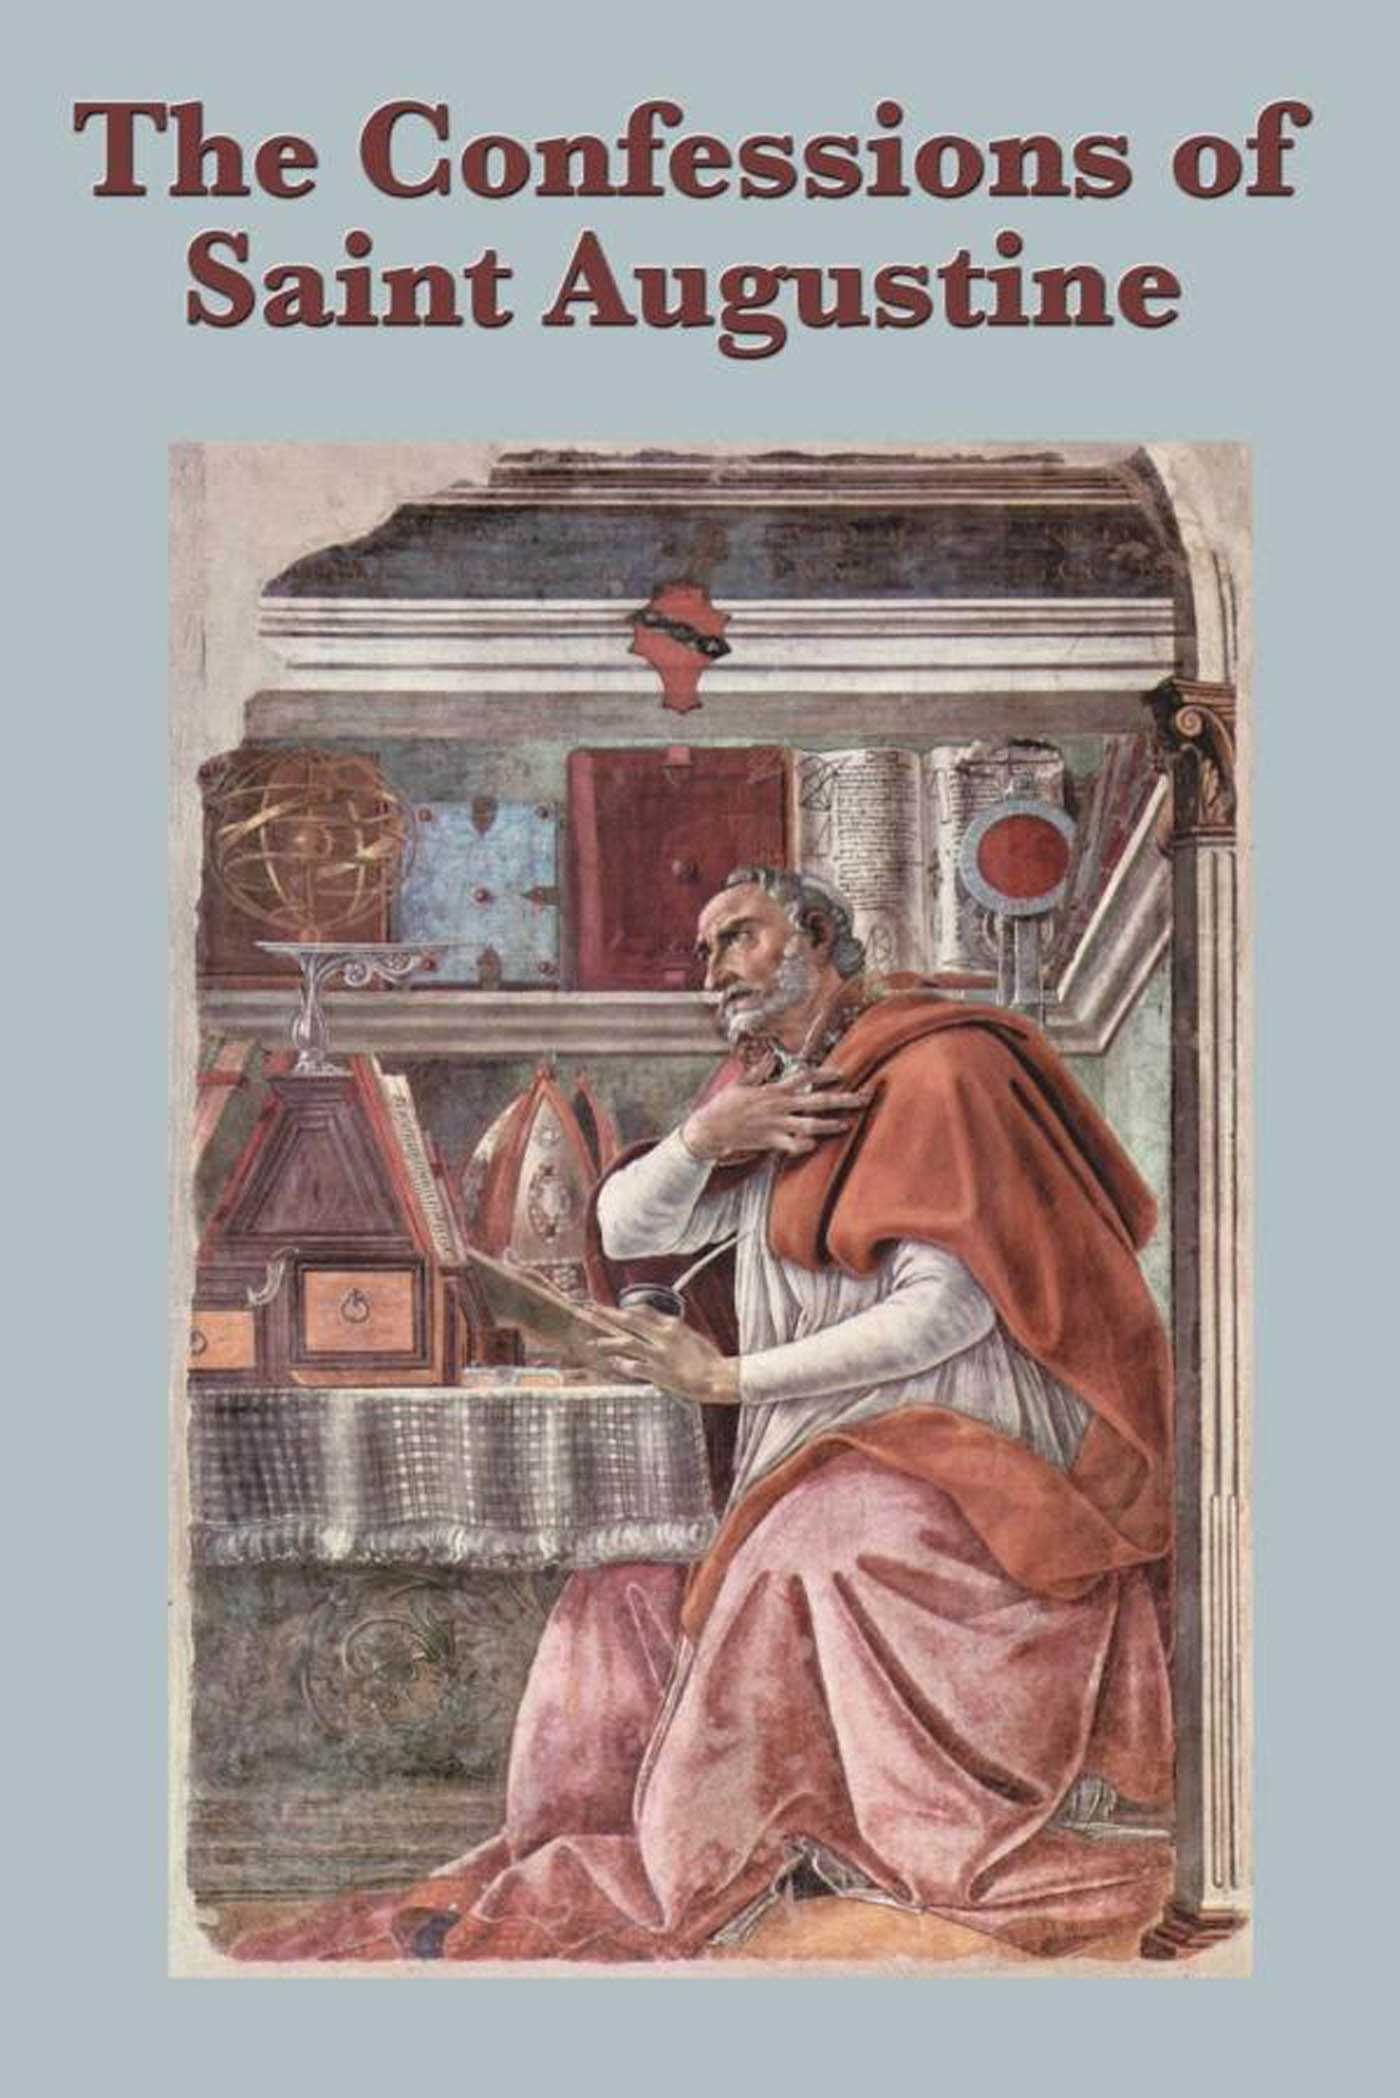 The Confessions of Saint Augustine eBook by St. Augustine   Official Publisher Page   Simon & Schuster